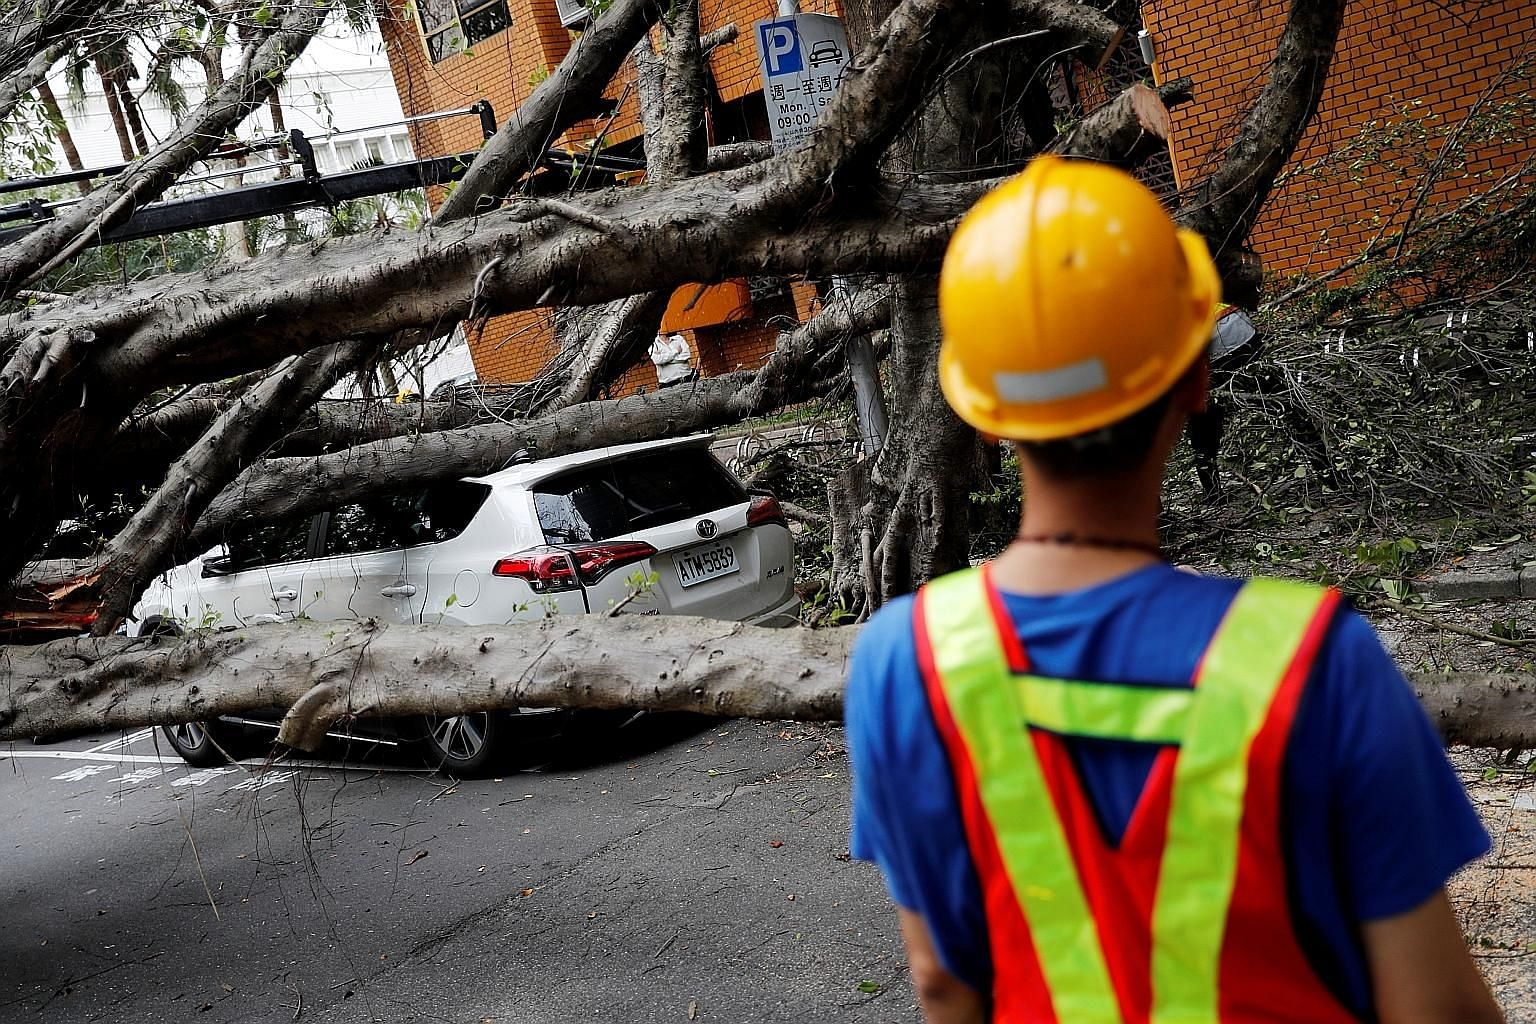 A vehicle surrounded by fallen trees in Taipei after an earthquake yesterday.